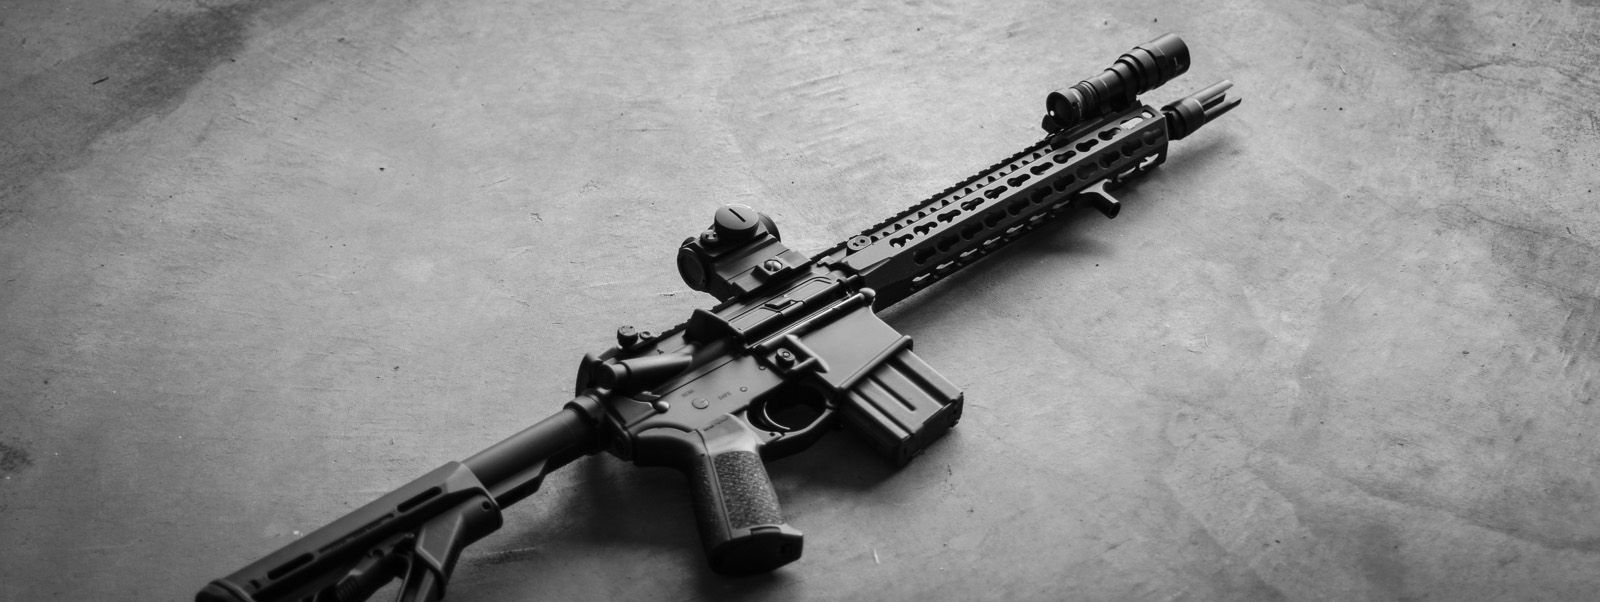 """Complete BCM 11.5"""" SBR with Arisaka 300 Series Light Body, Inline Scout Mount, and Finger Stop."""